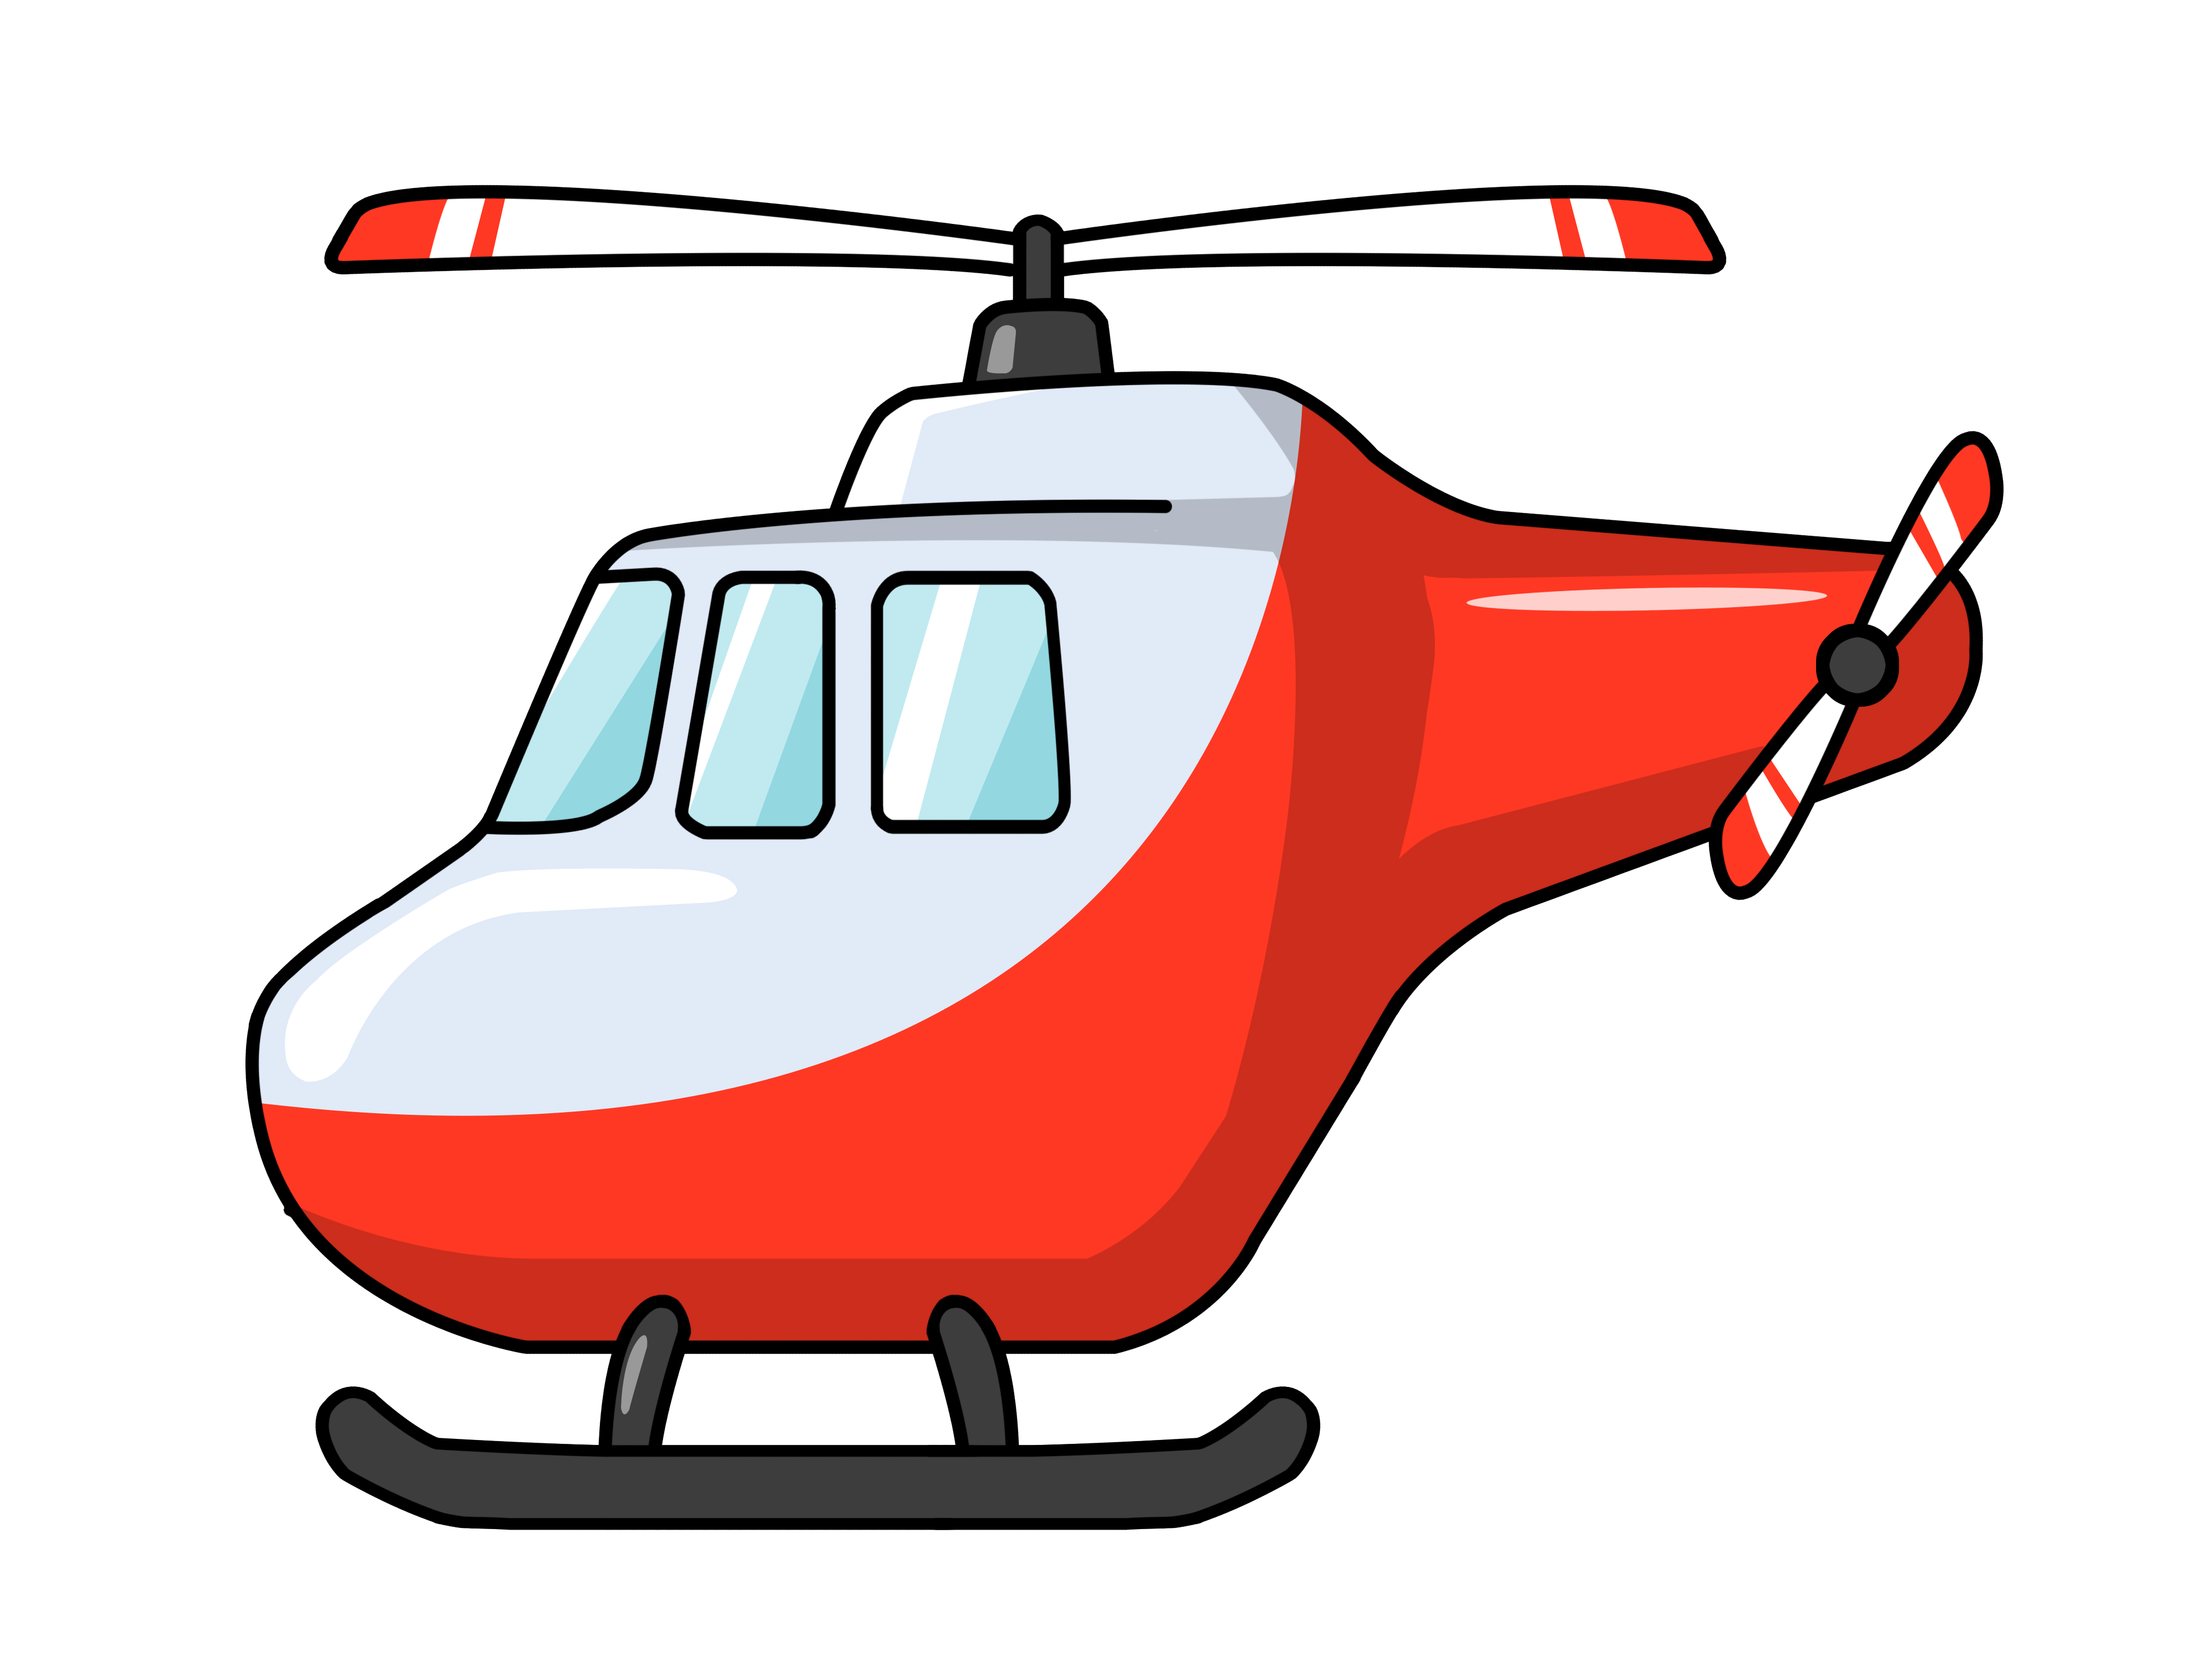 Free Helicopter Clipart 27 Stunning Cliparts FHC